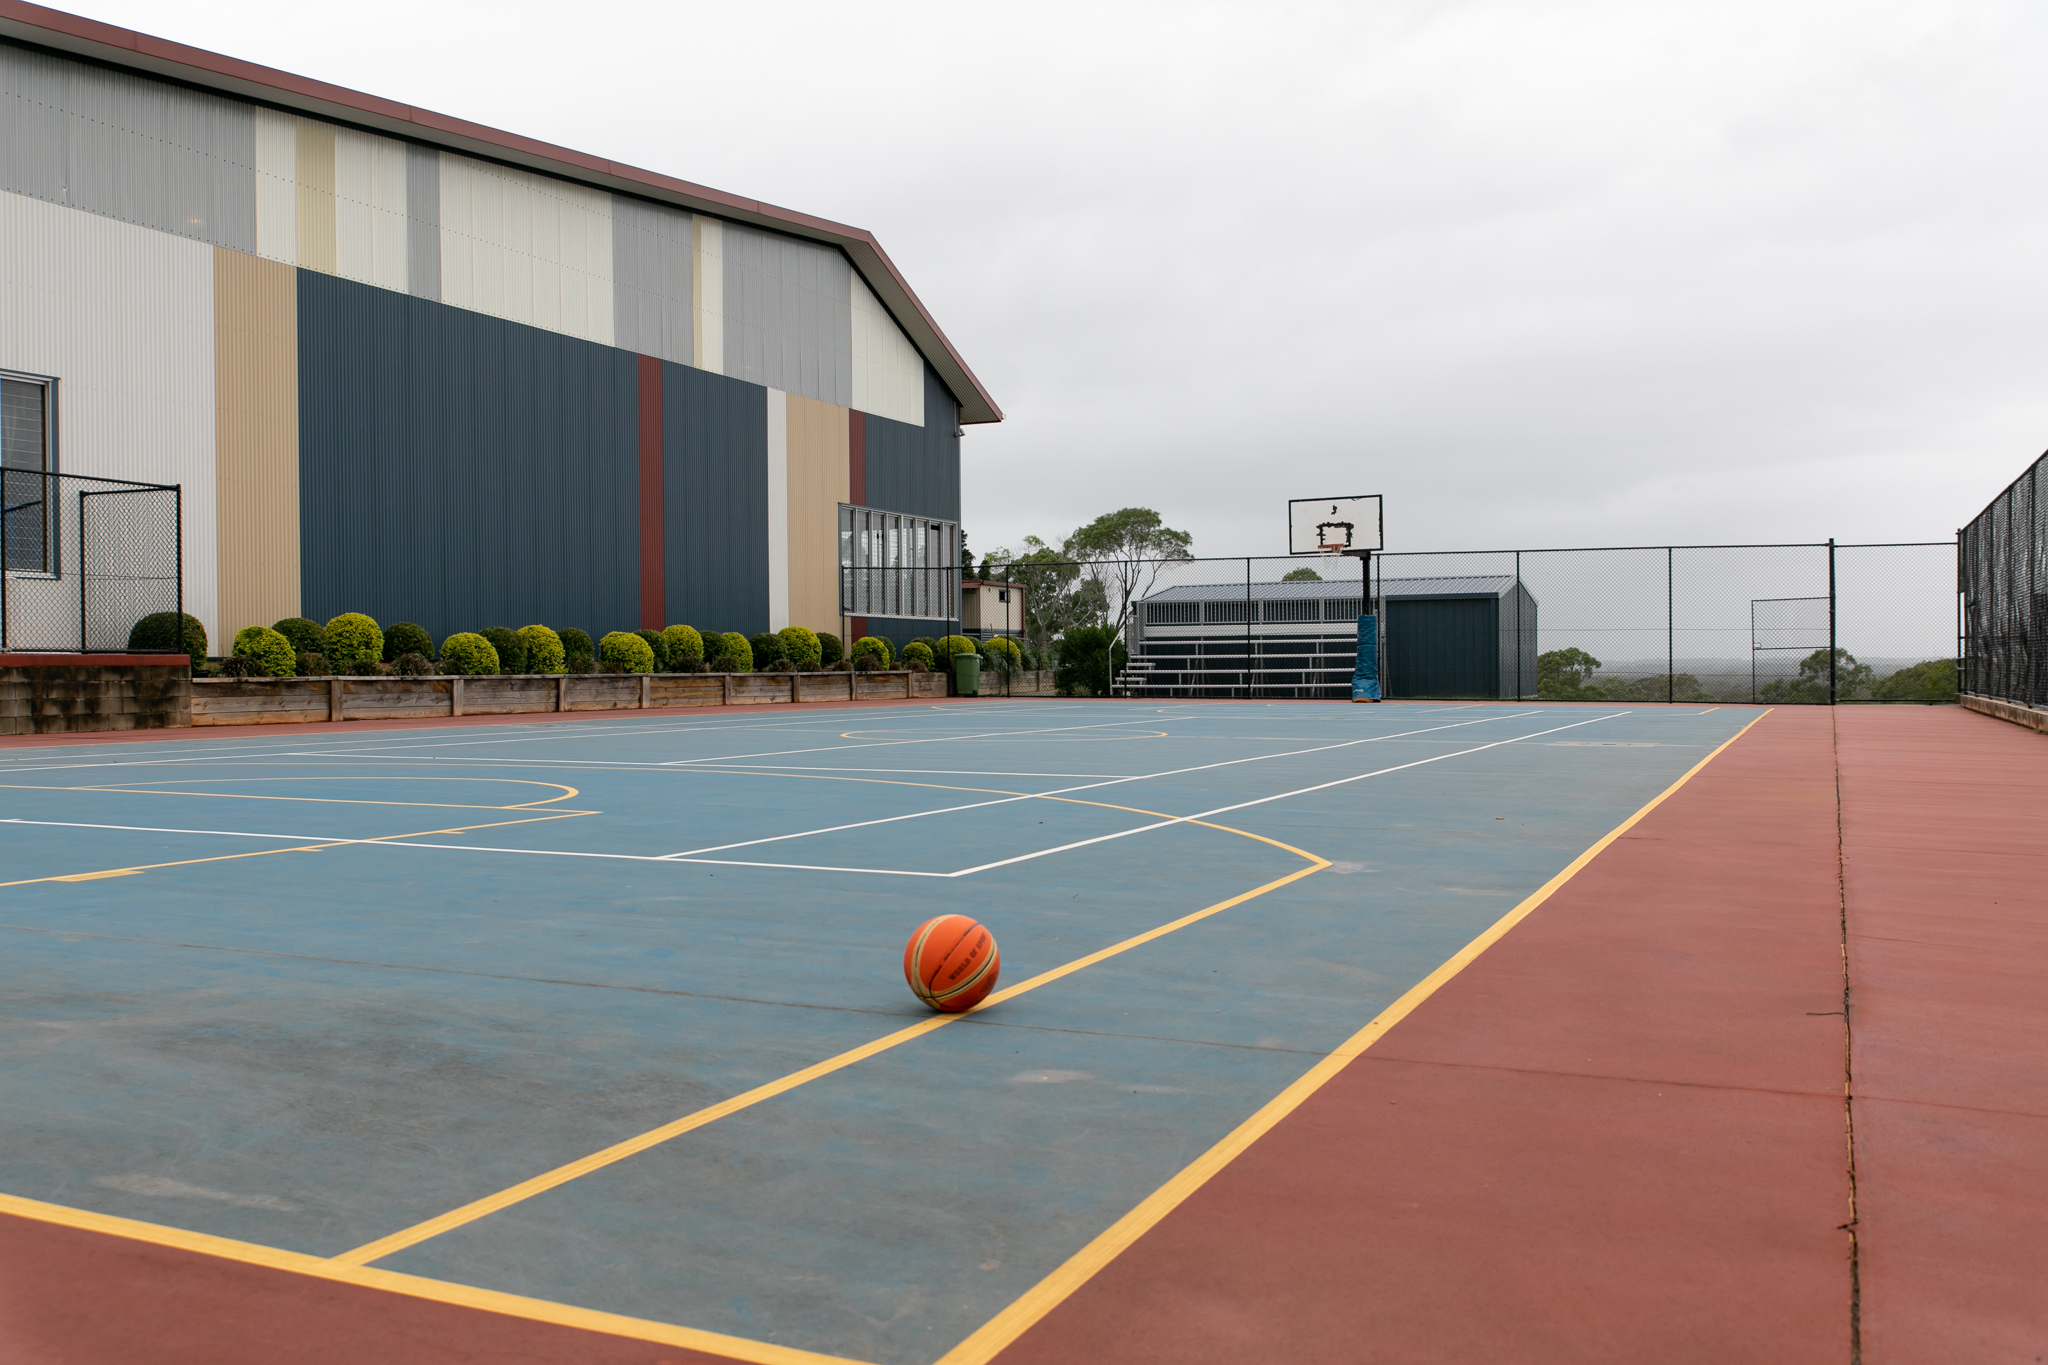 Outdoor basketball and tennis courts